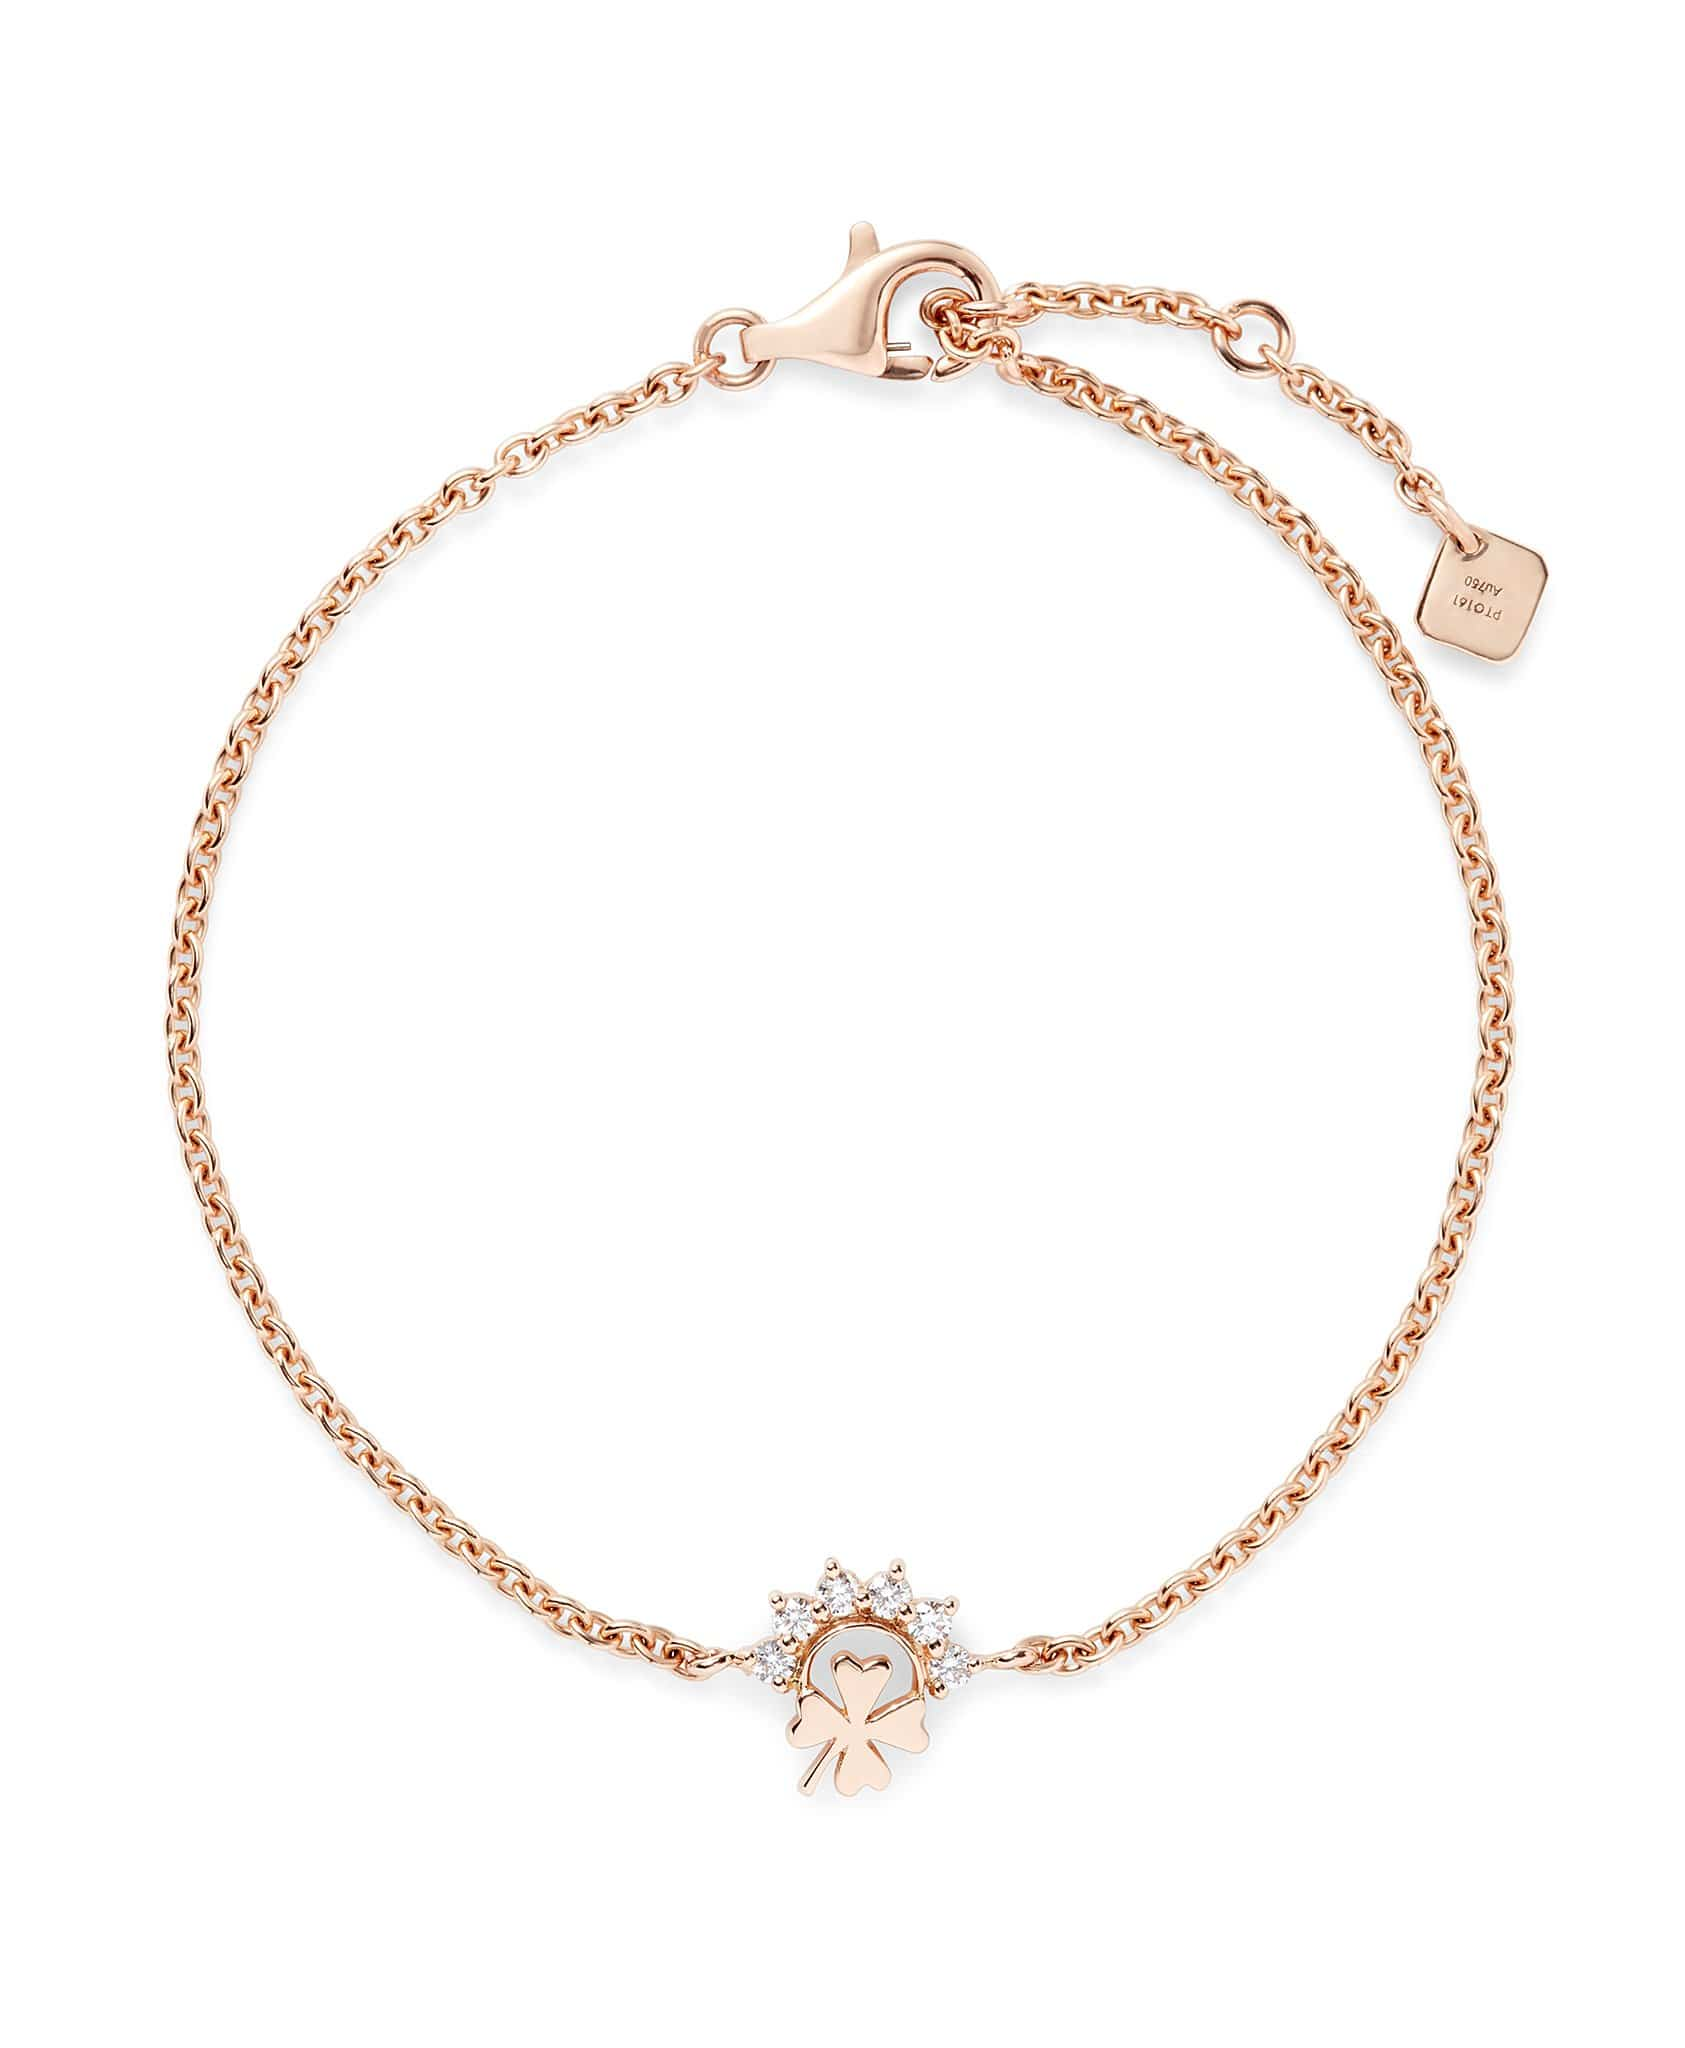 Small Luck Bracelet: Discover Luxury Fine Jewelry | Nouvel Heritage || Rose Gold